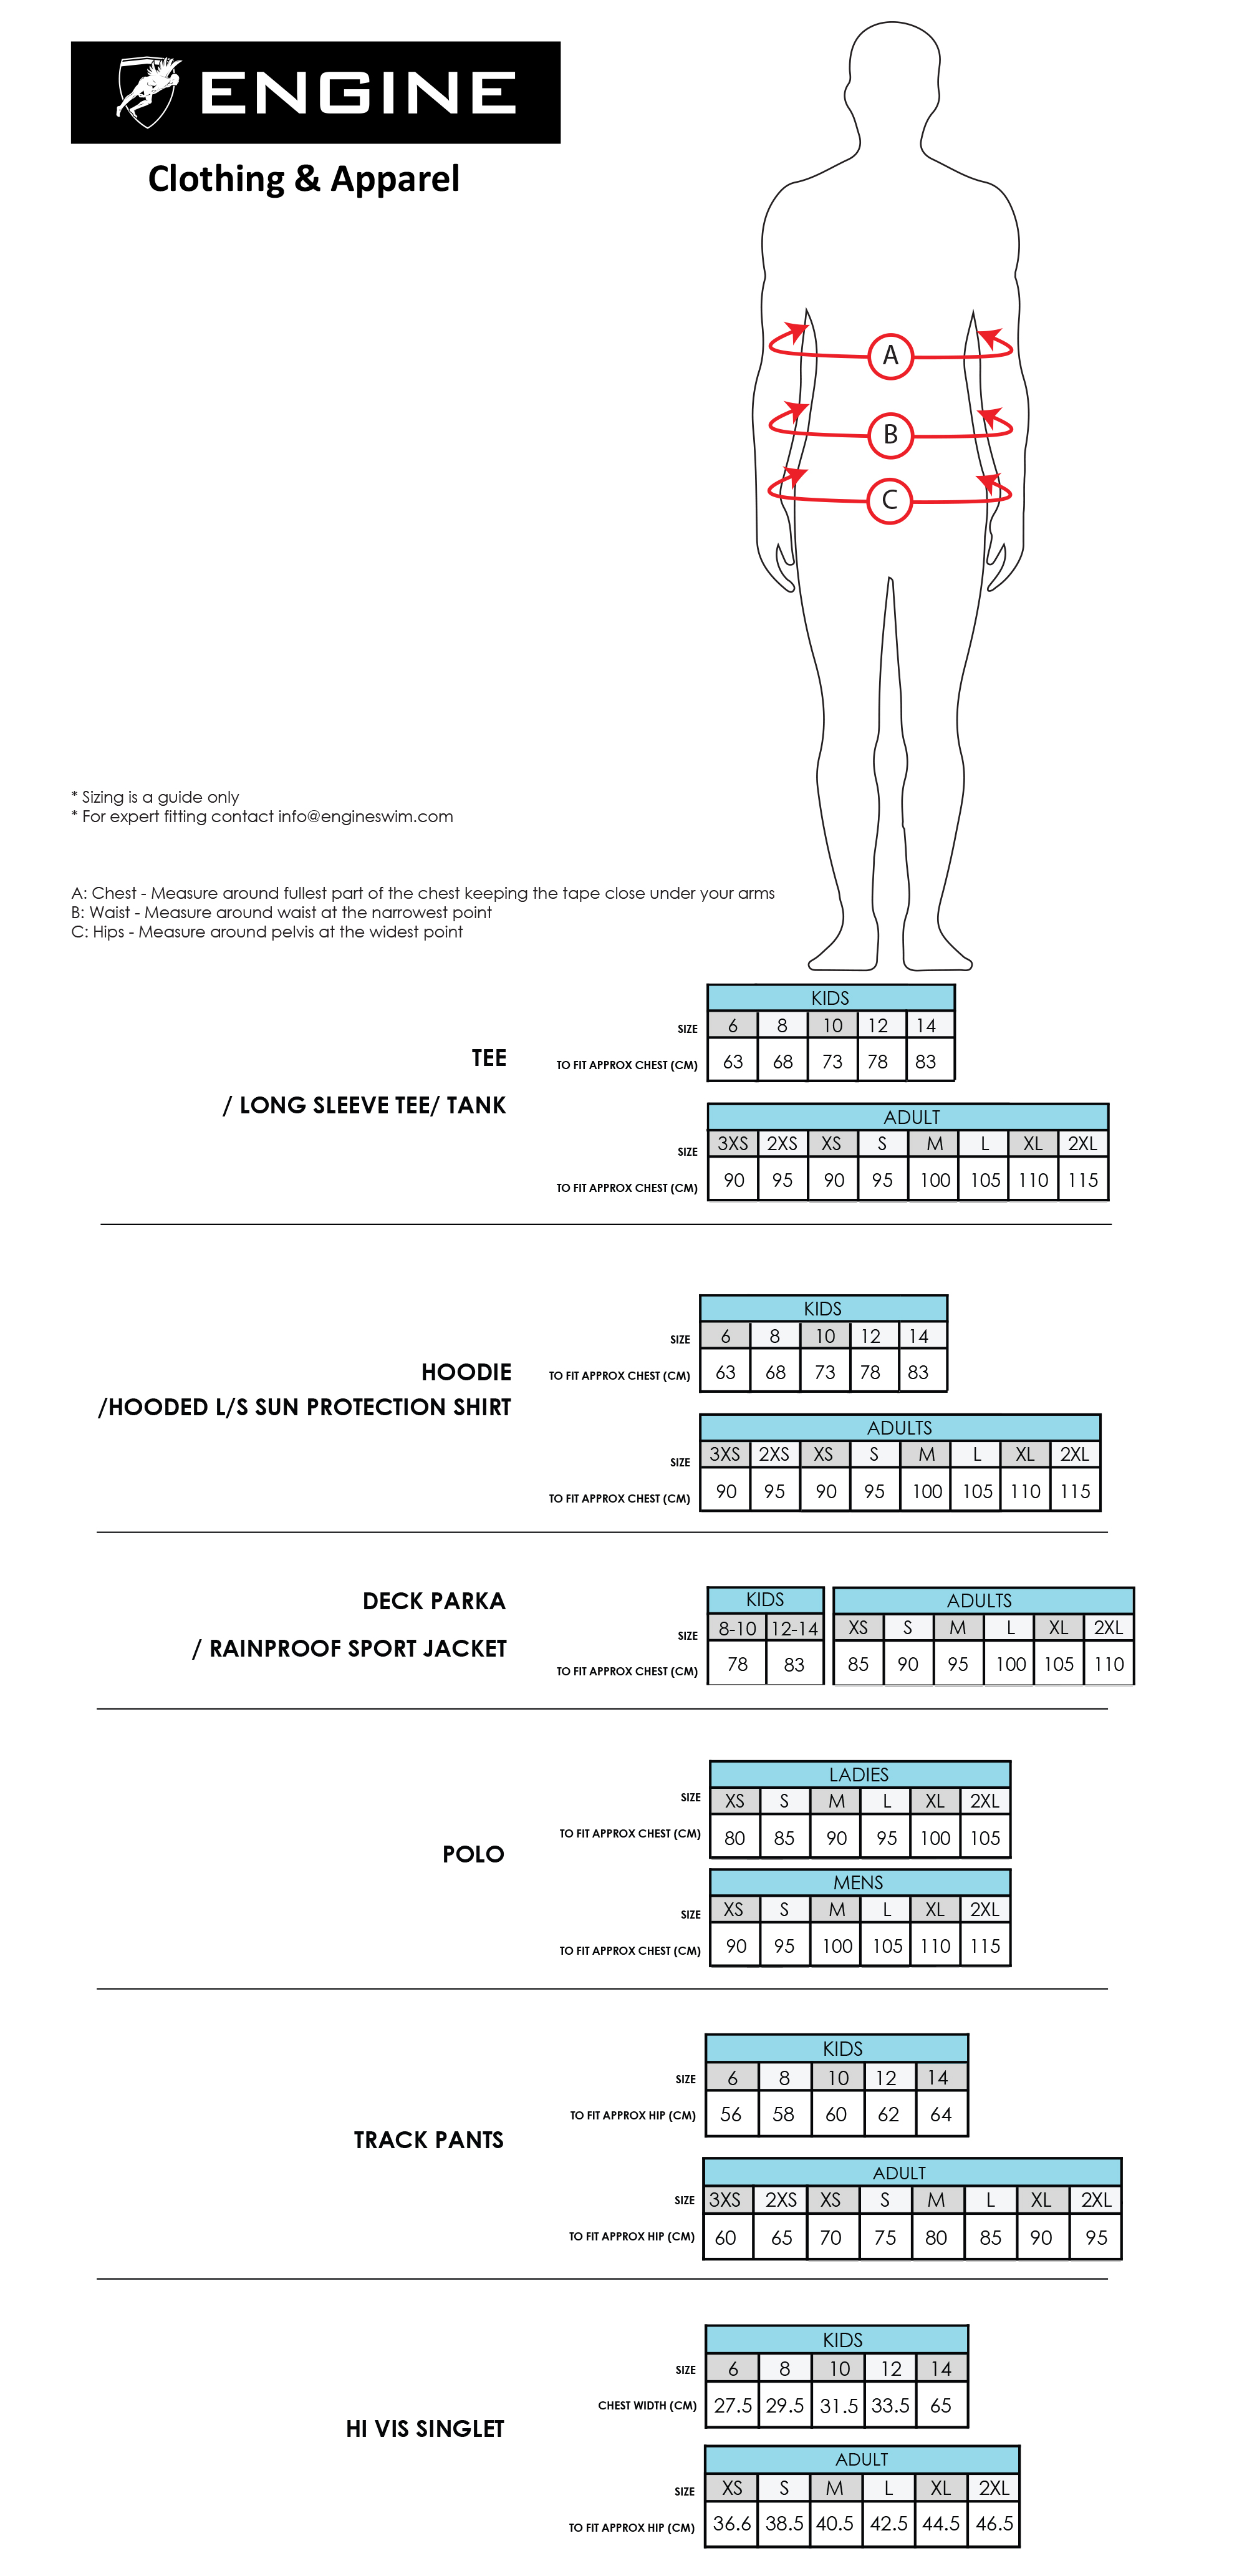 clothing-and-apparel-size-chart-2019.jpg